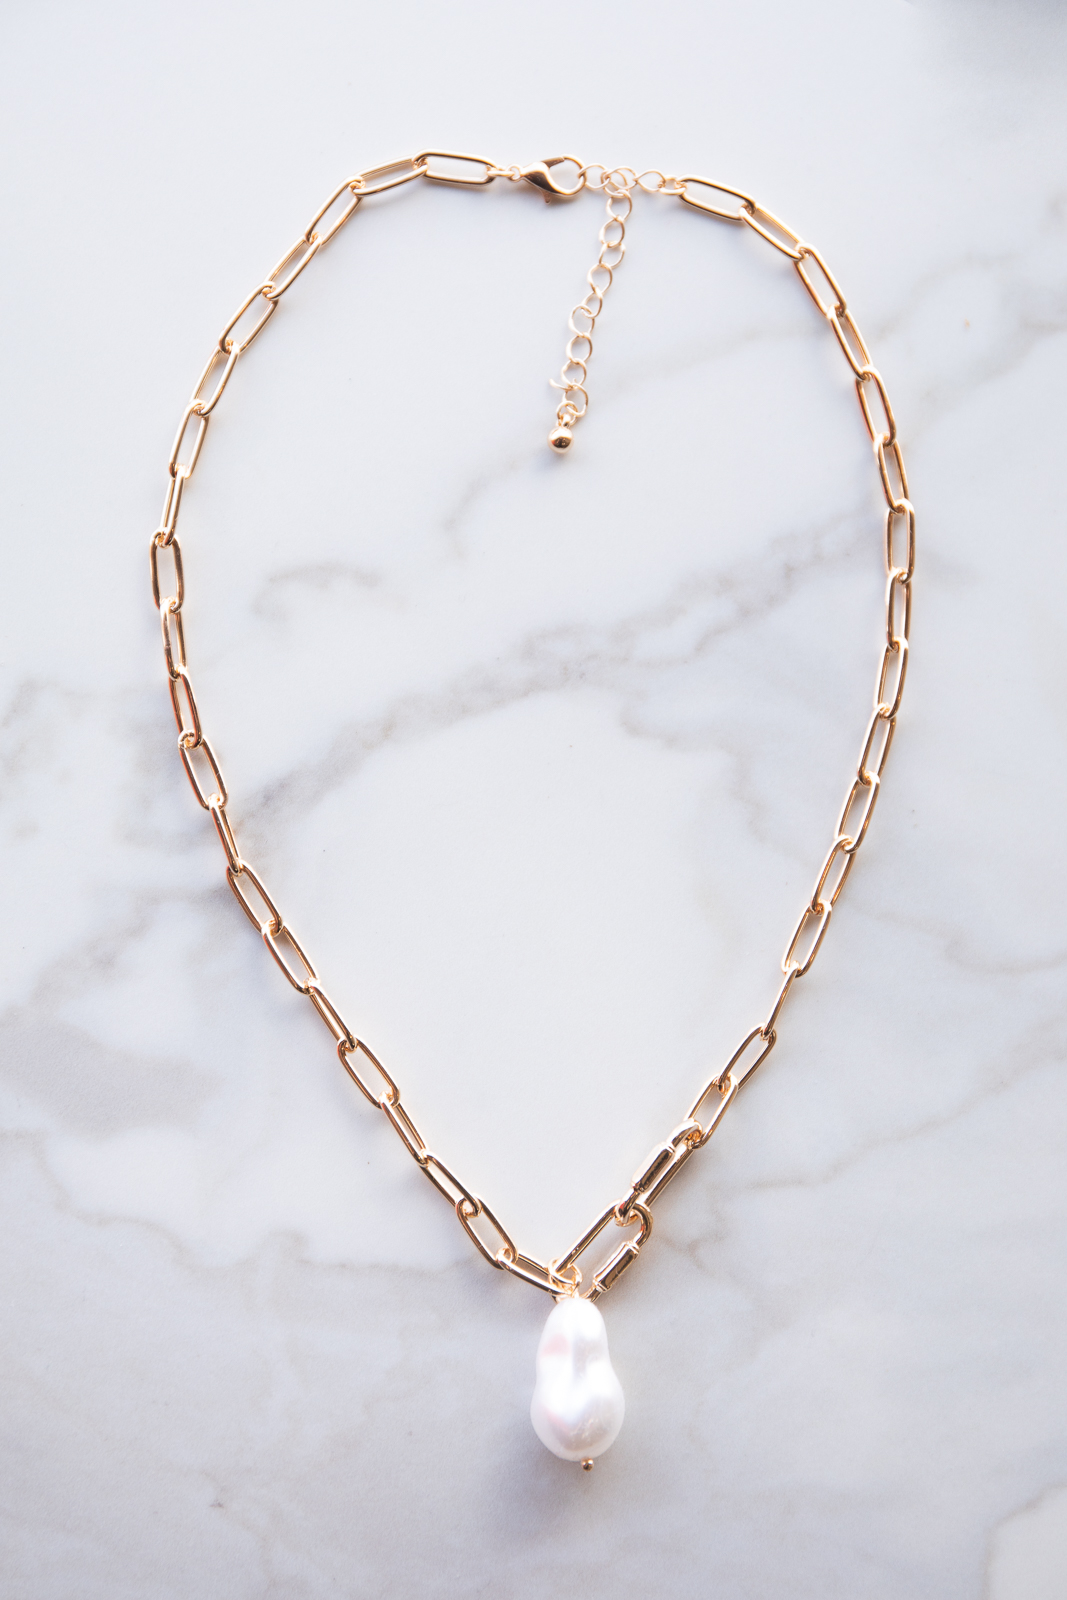 Gold Metallic Paperclip Chain Necklace with Pearl Pendant